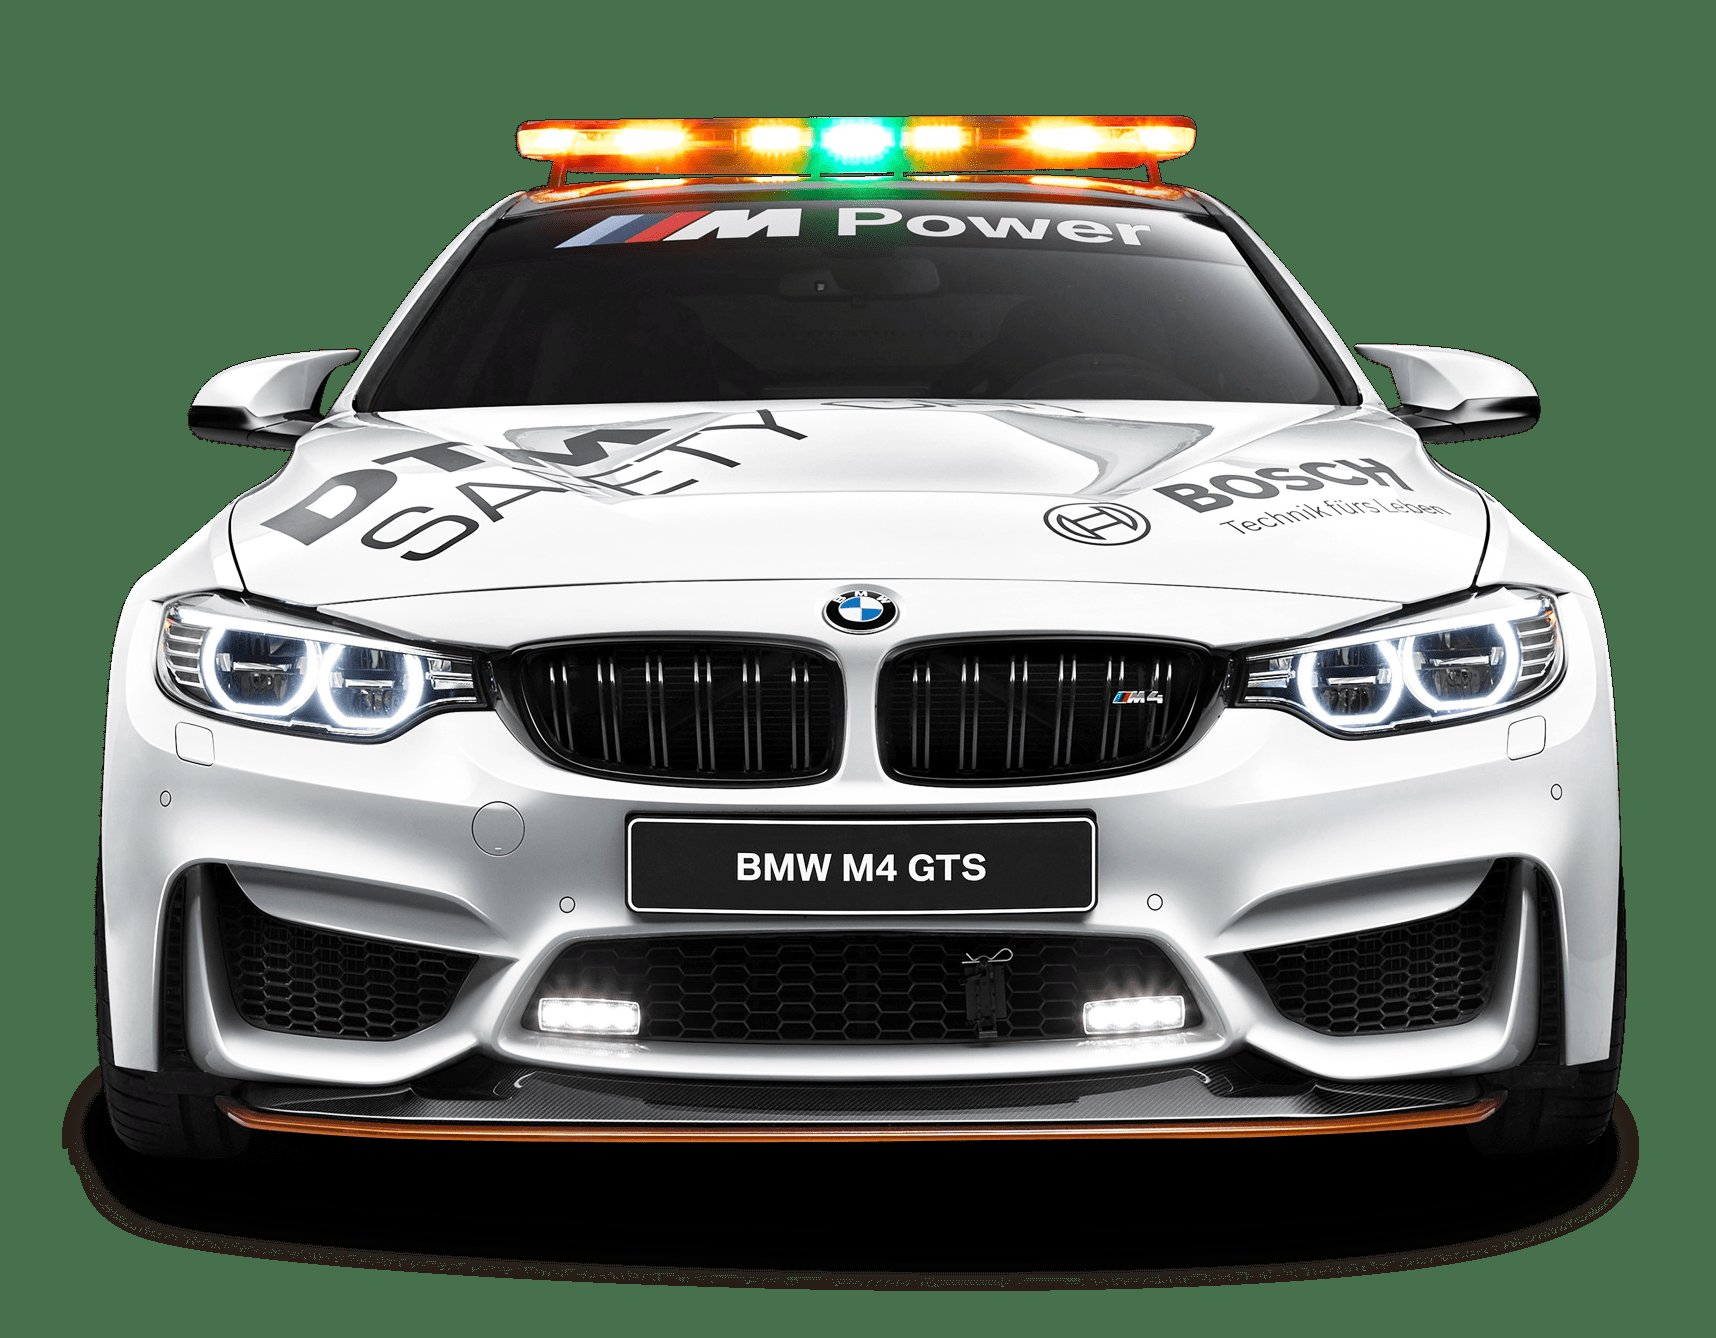 Latest Bmw M4 Gts Safety Car Png Image Pngpix Free Download